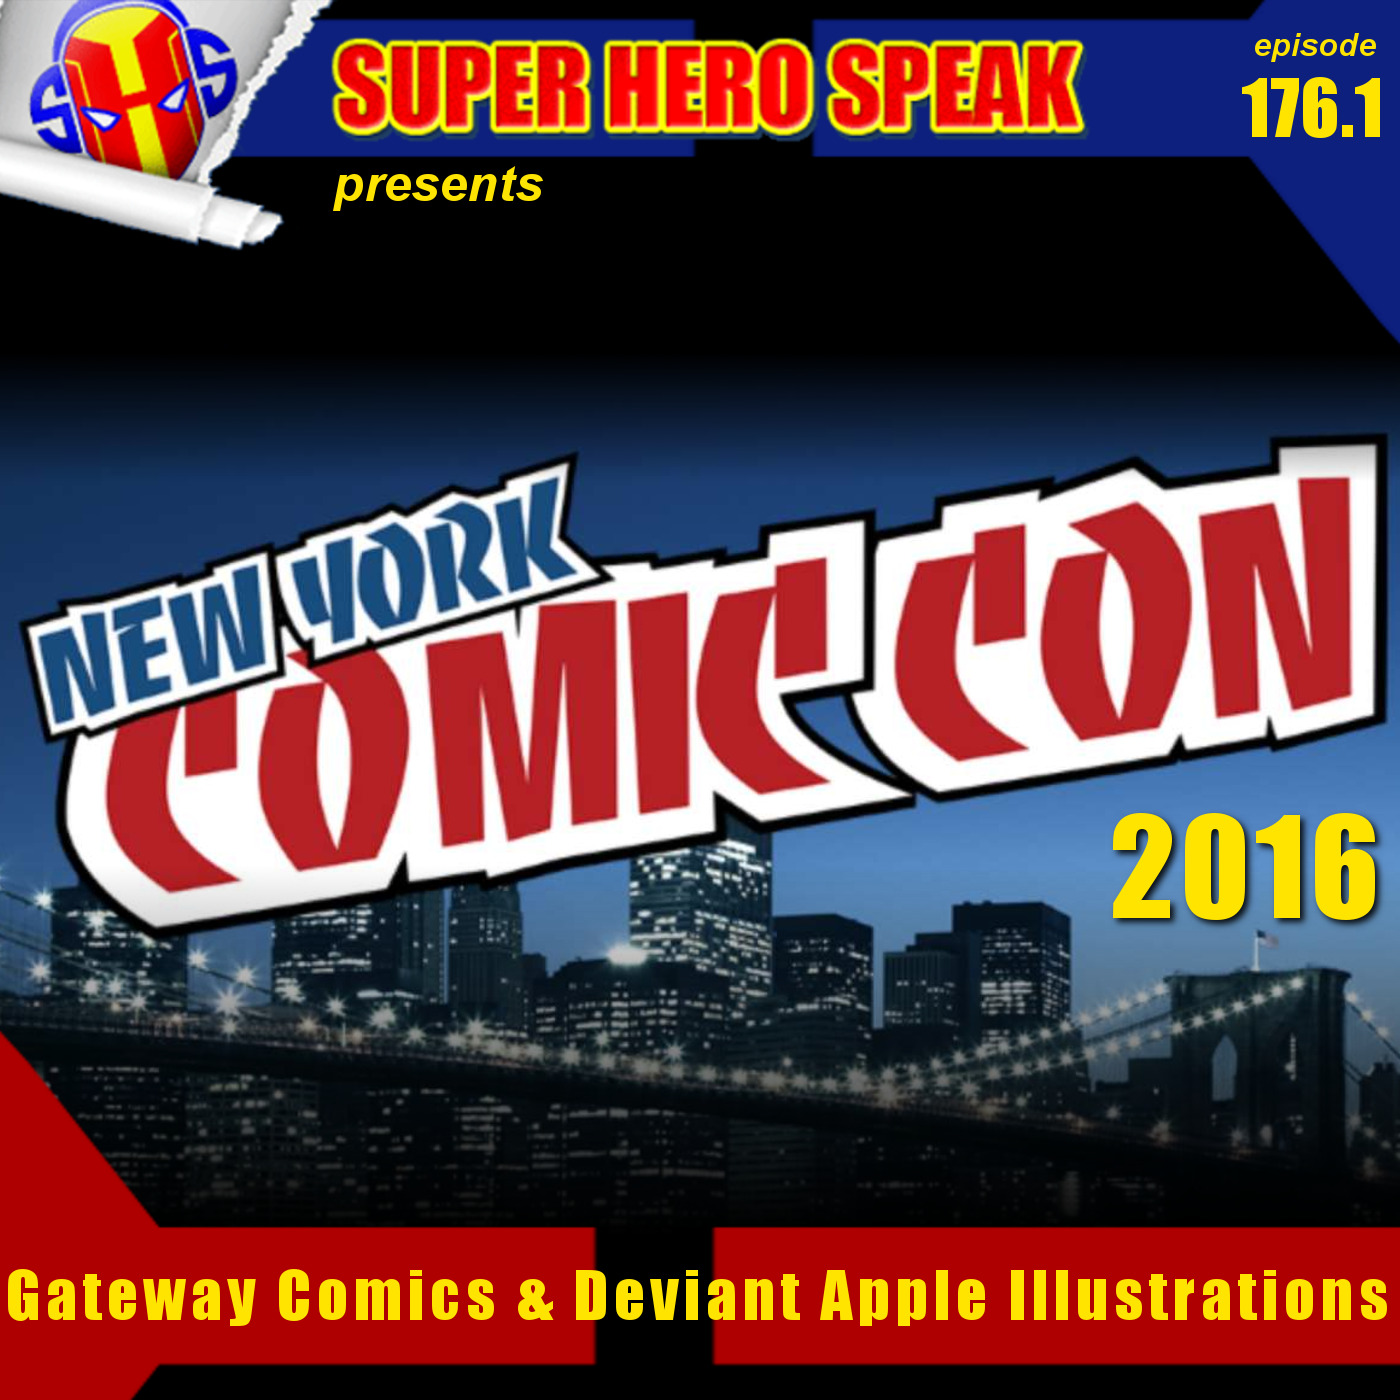 #176.1: Gateway Comics & Deviant Apple Illustrations